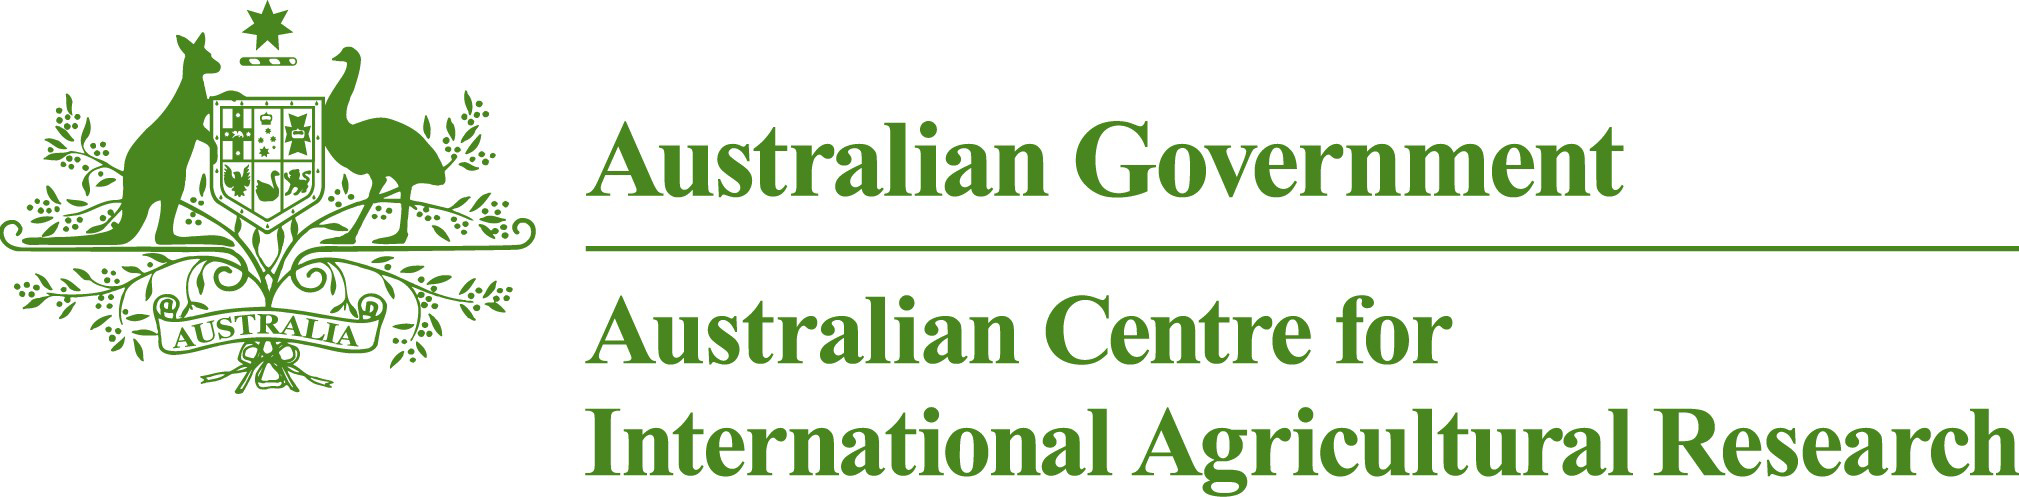 Australian Government Australian Centre for International Agricultural Research